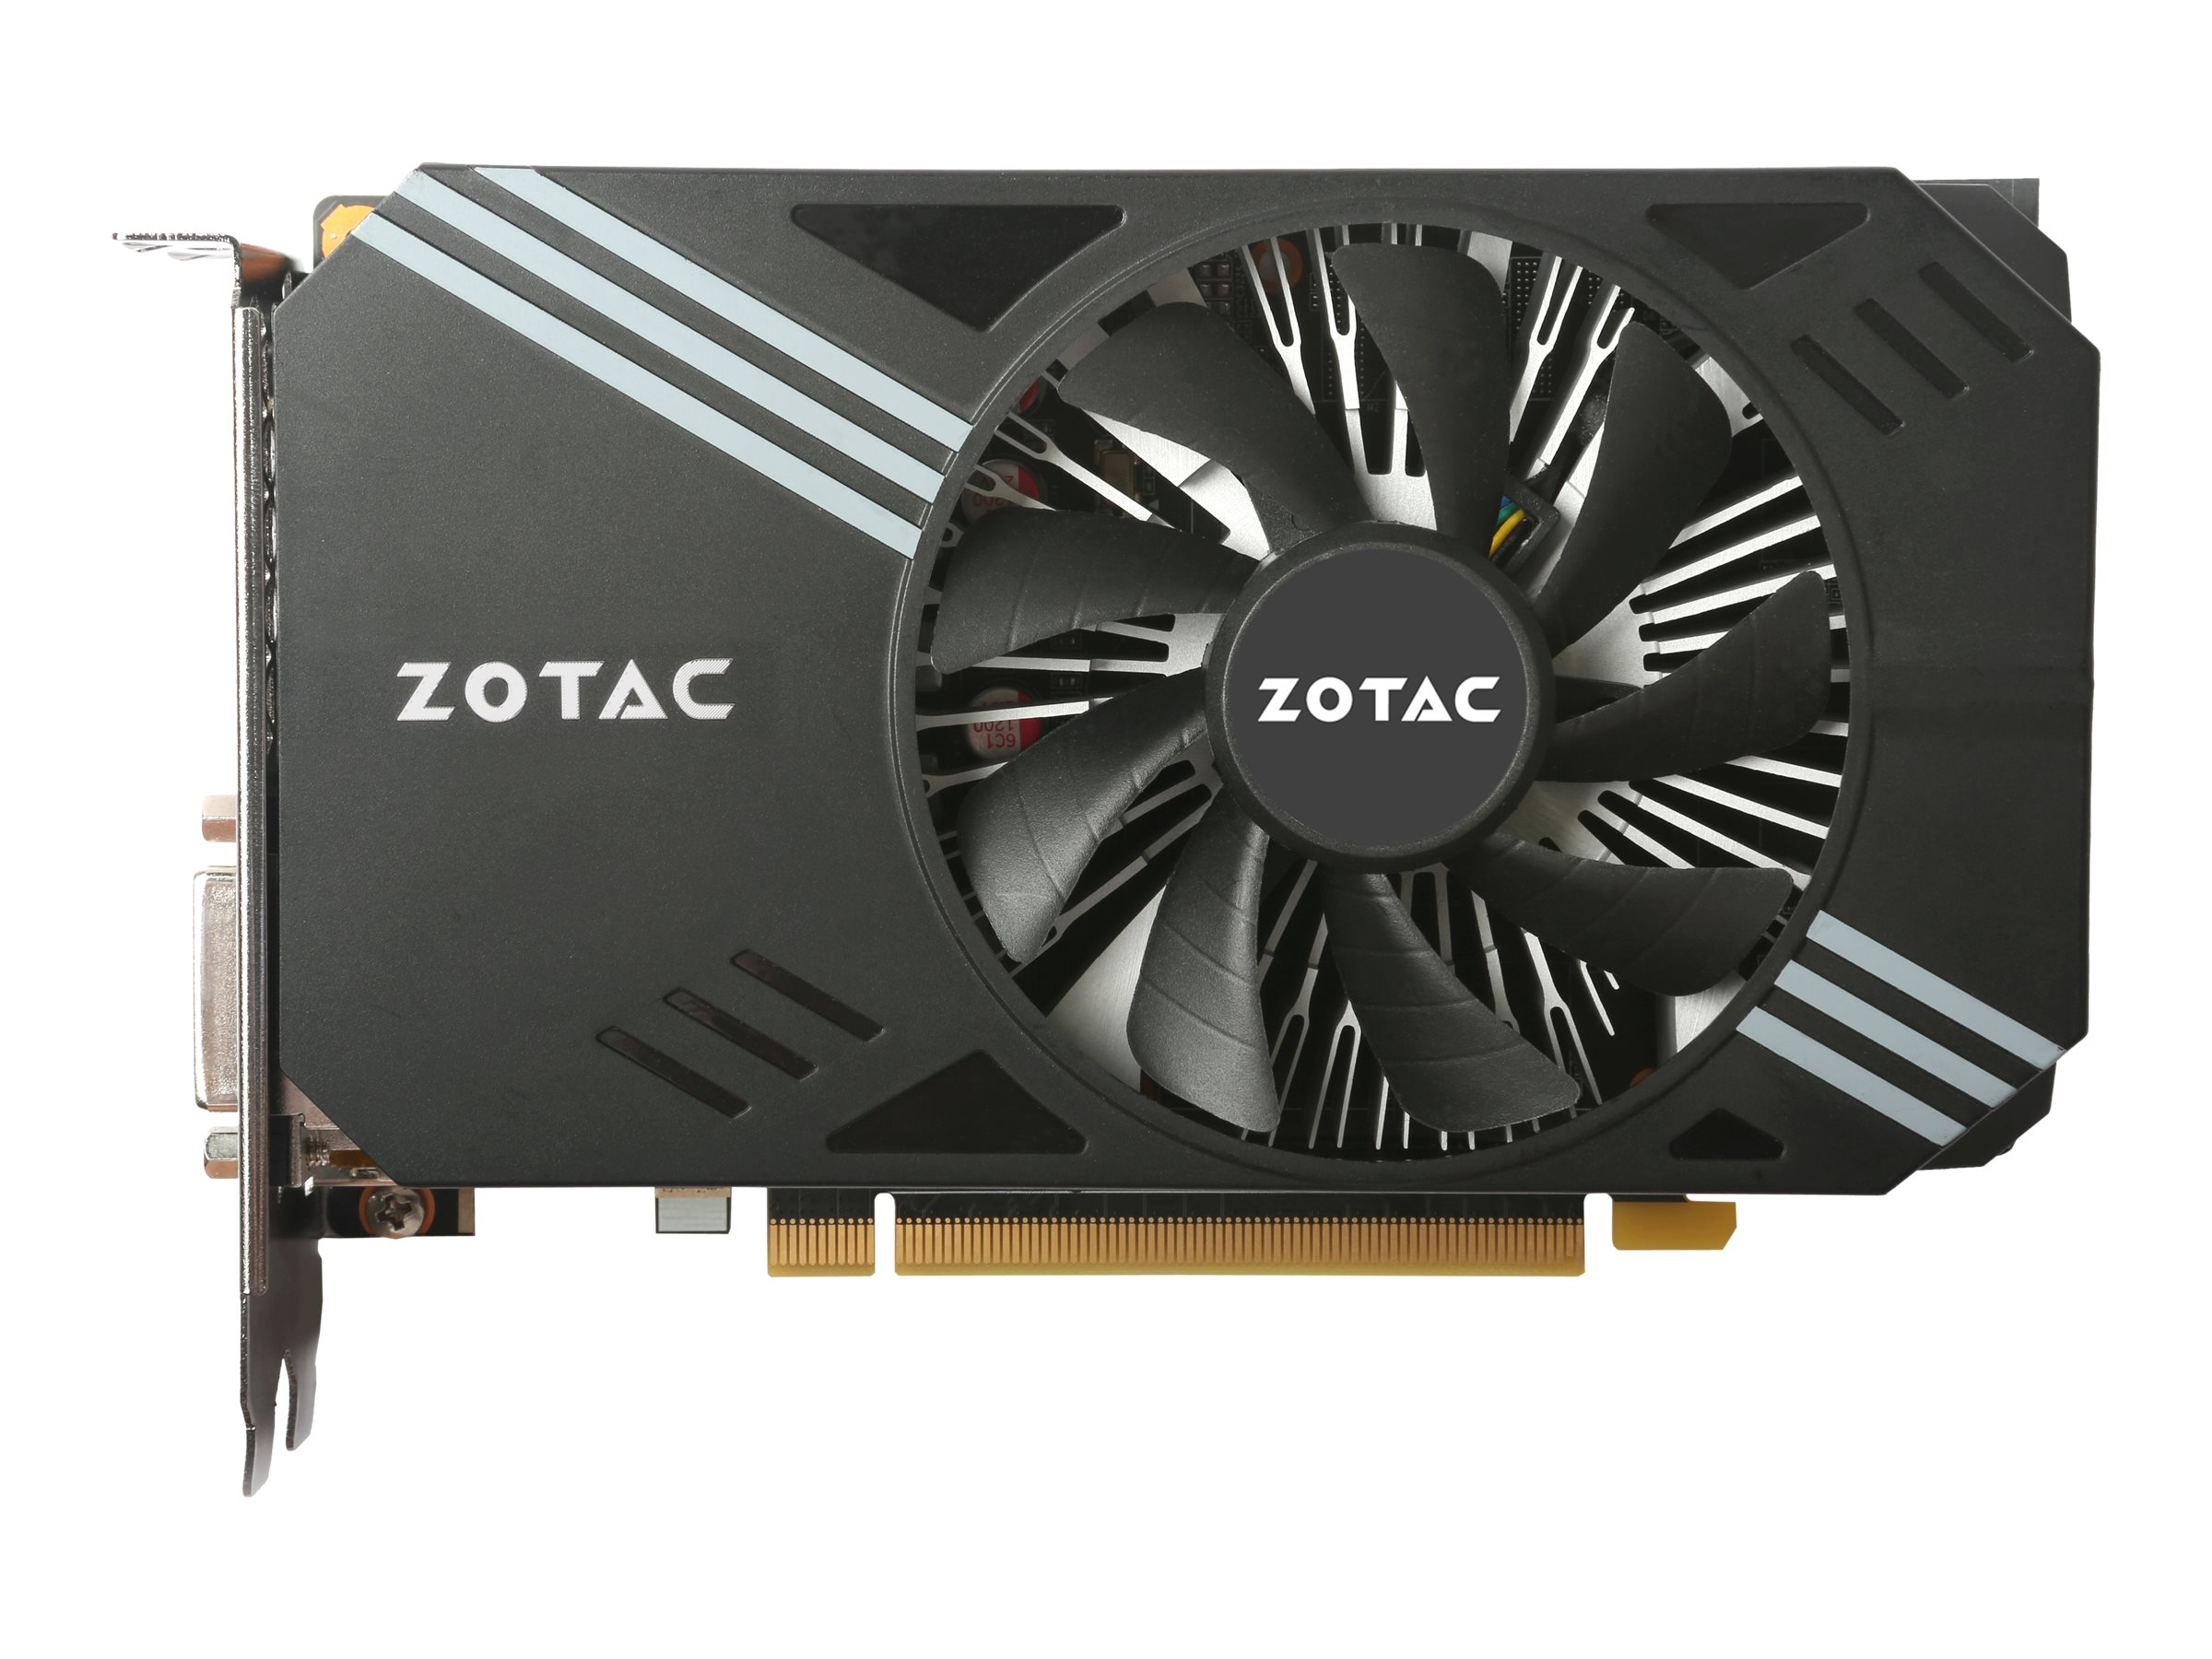 Zotac GeForce GTX 1060 PCIe Graphics Card, 3GB GDDR5